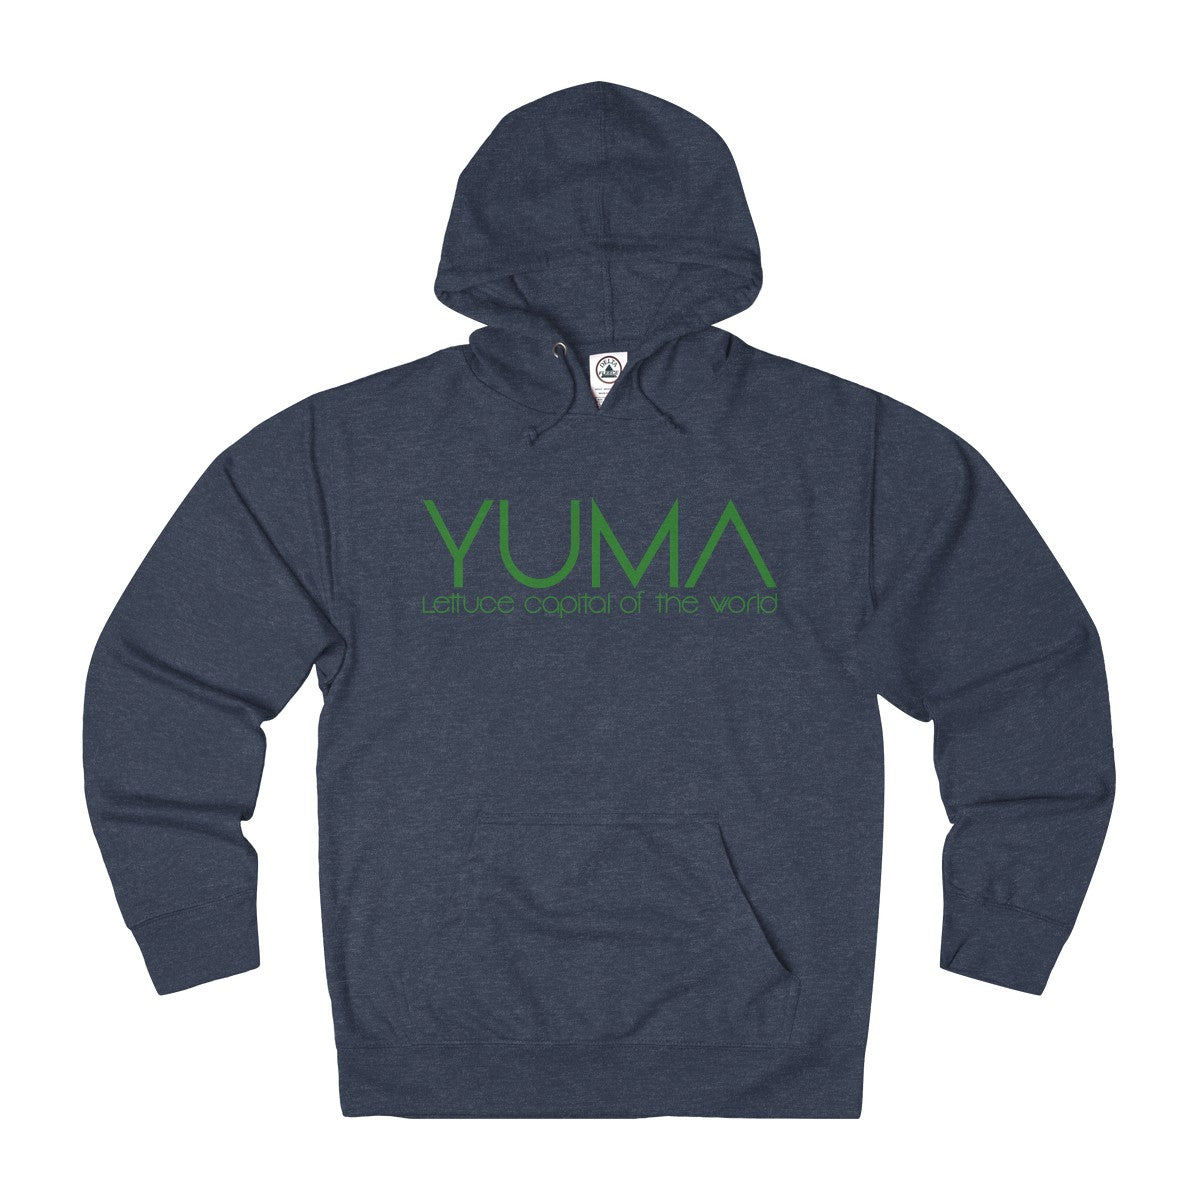 Yuma Lettuce Capital of the World French Terry Hoodie